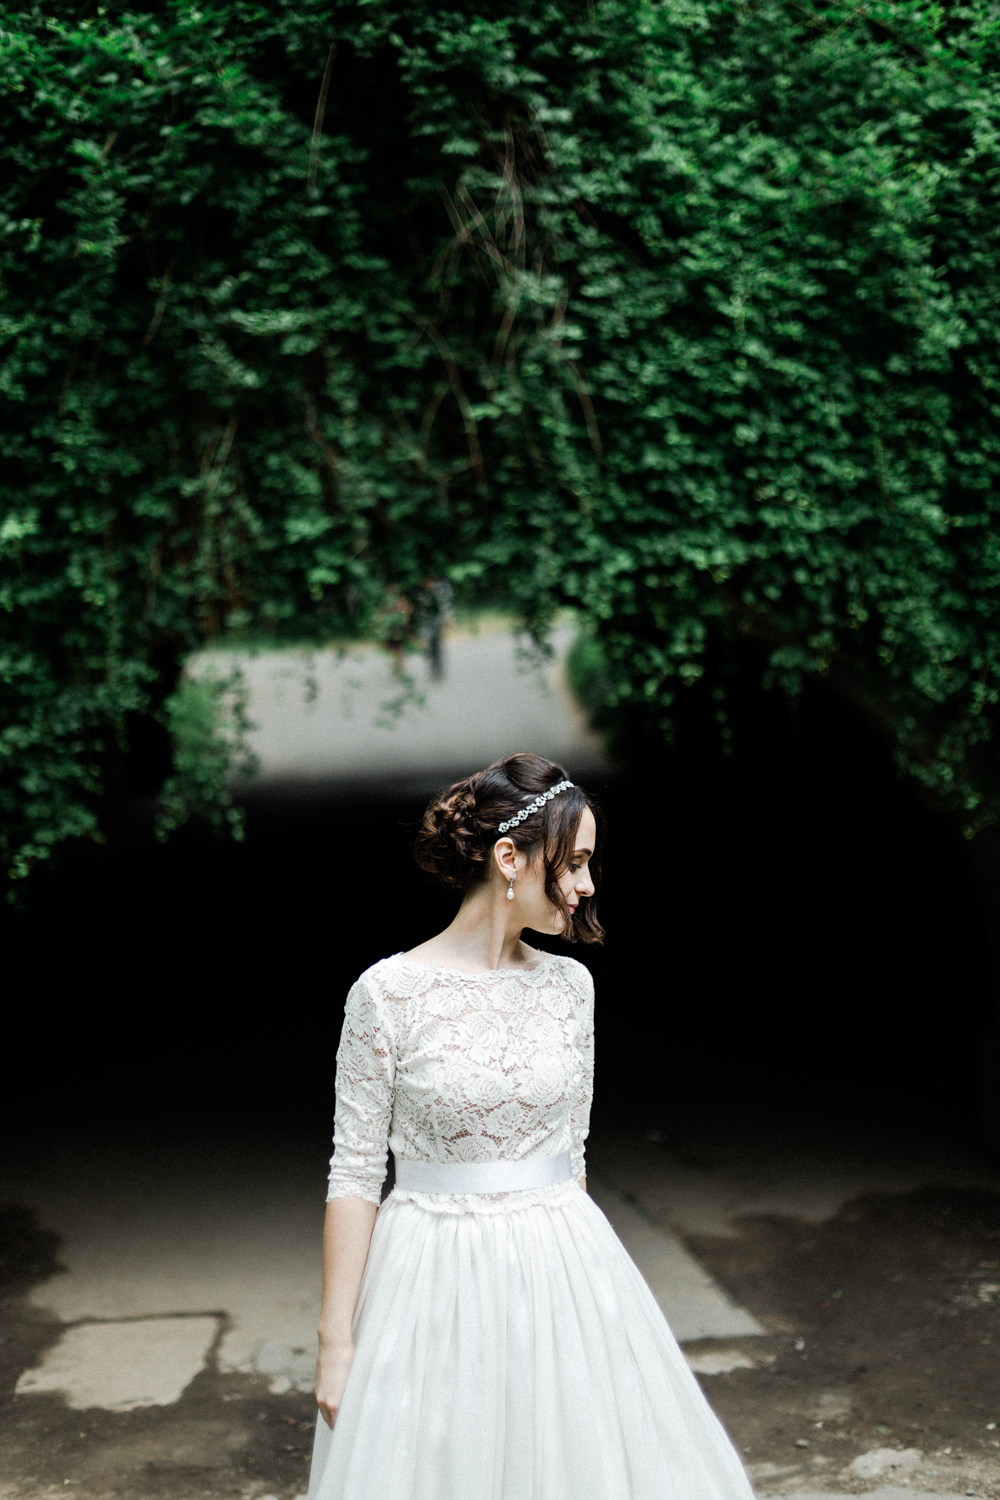 lissie_loomis_photo_nyc_brooklyn_wedding_engagement_photographer_photography-68.JPG